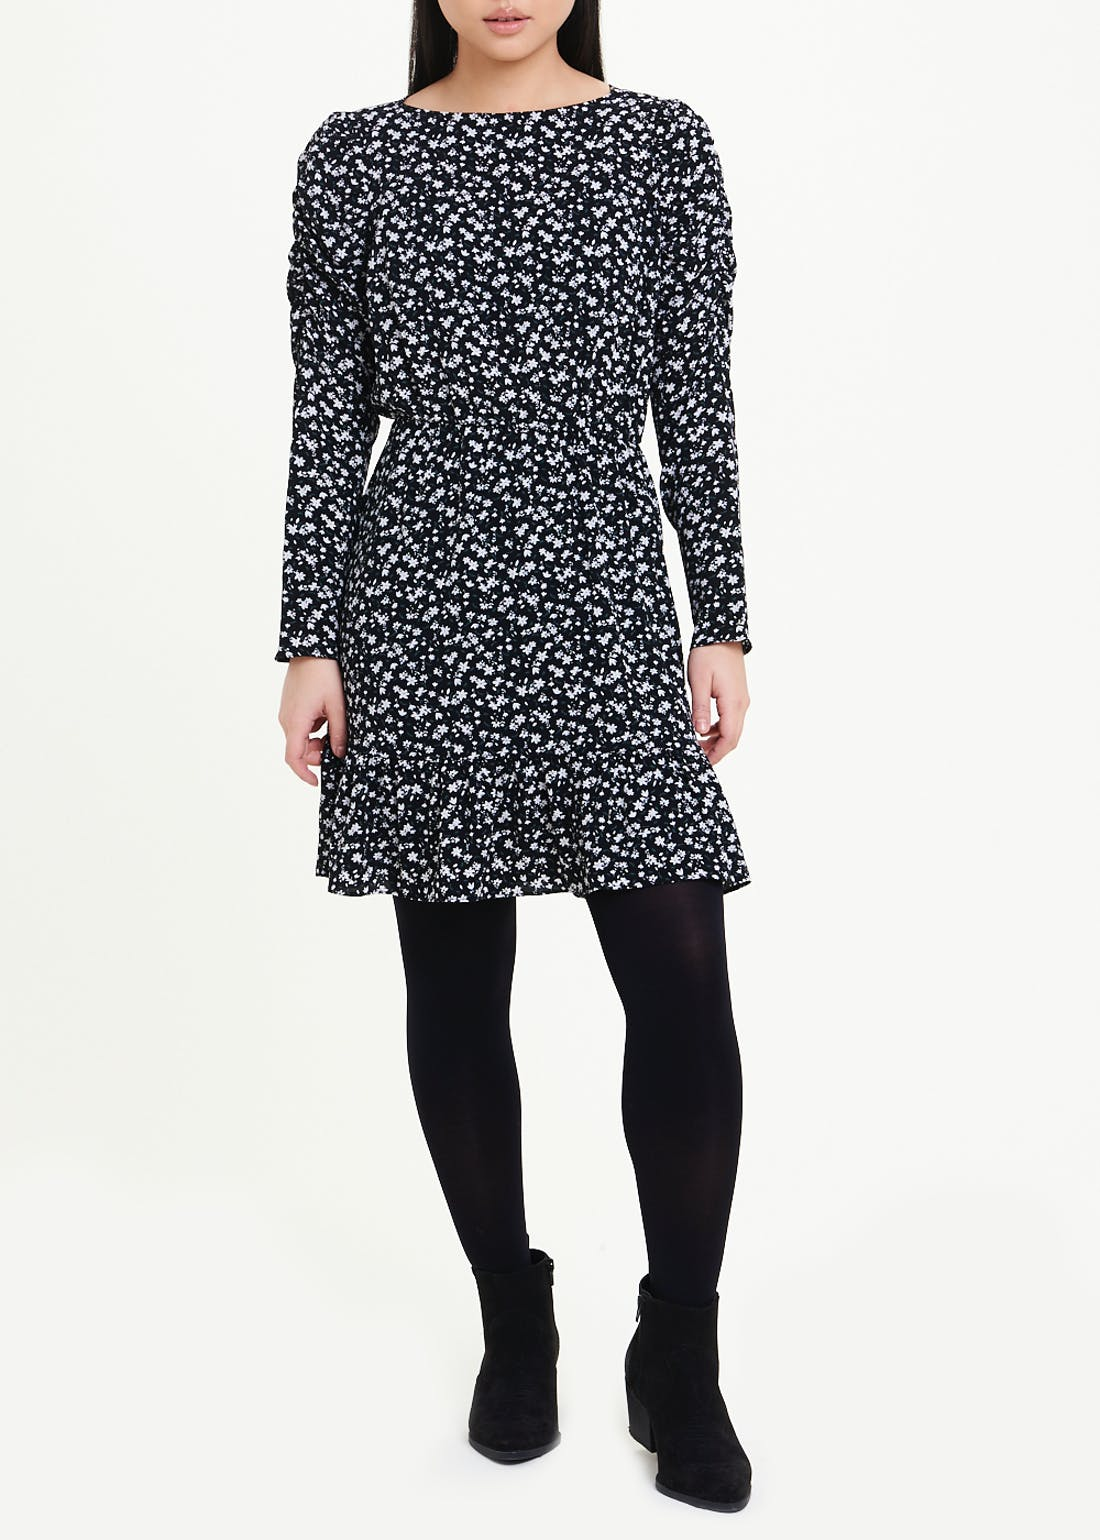 Papaya Petite Black Ruched Sleeve Floral Dress